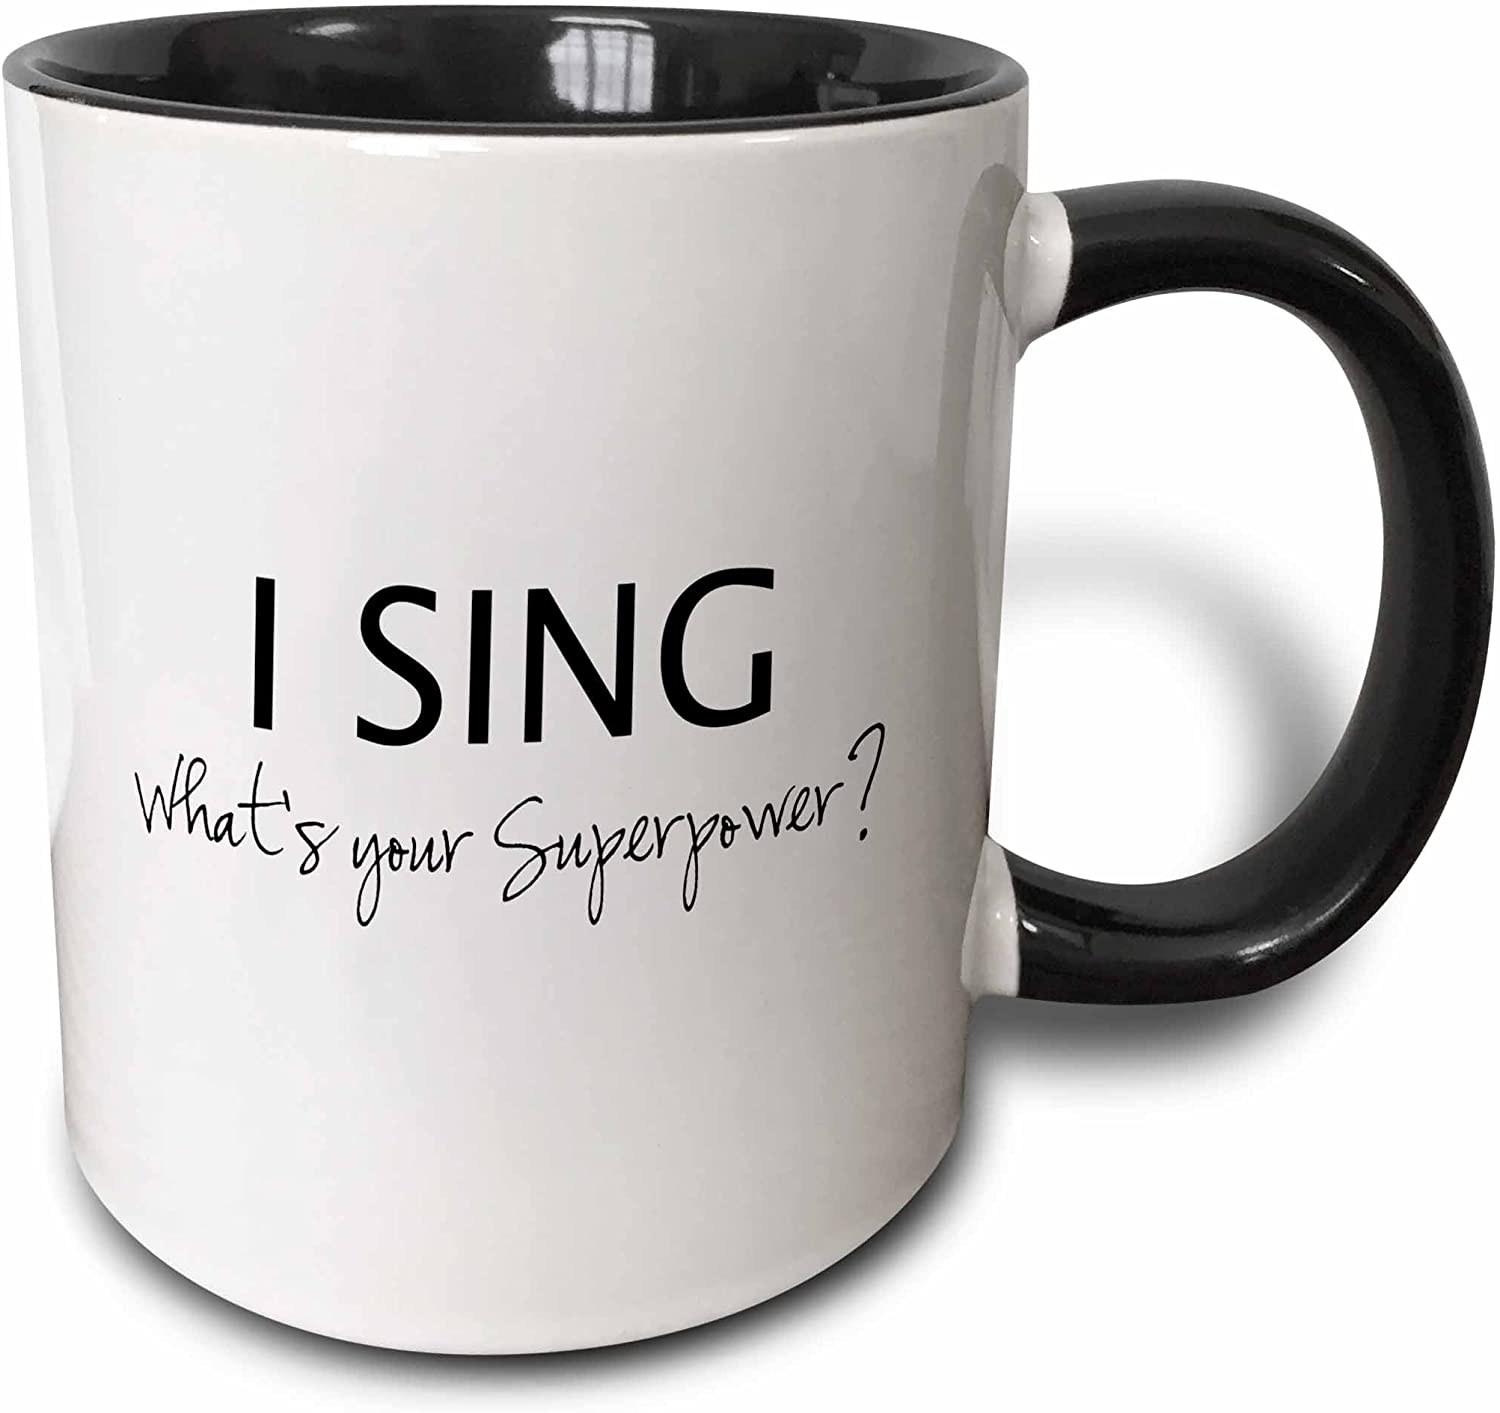 3dRose Superpower-Funny Singing Love Gift For Singers Two Tone Mug, 11 oz, Black